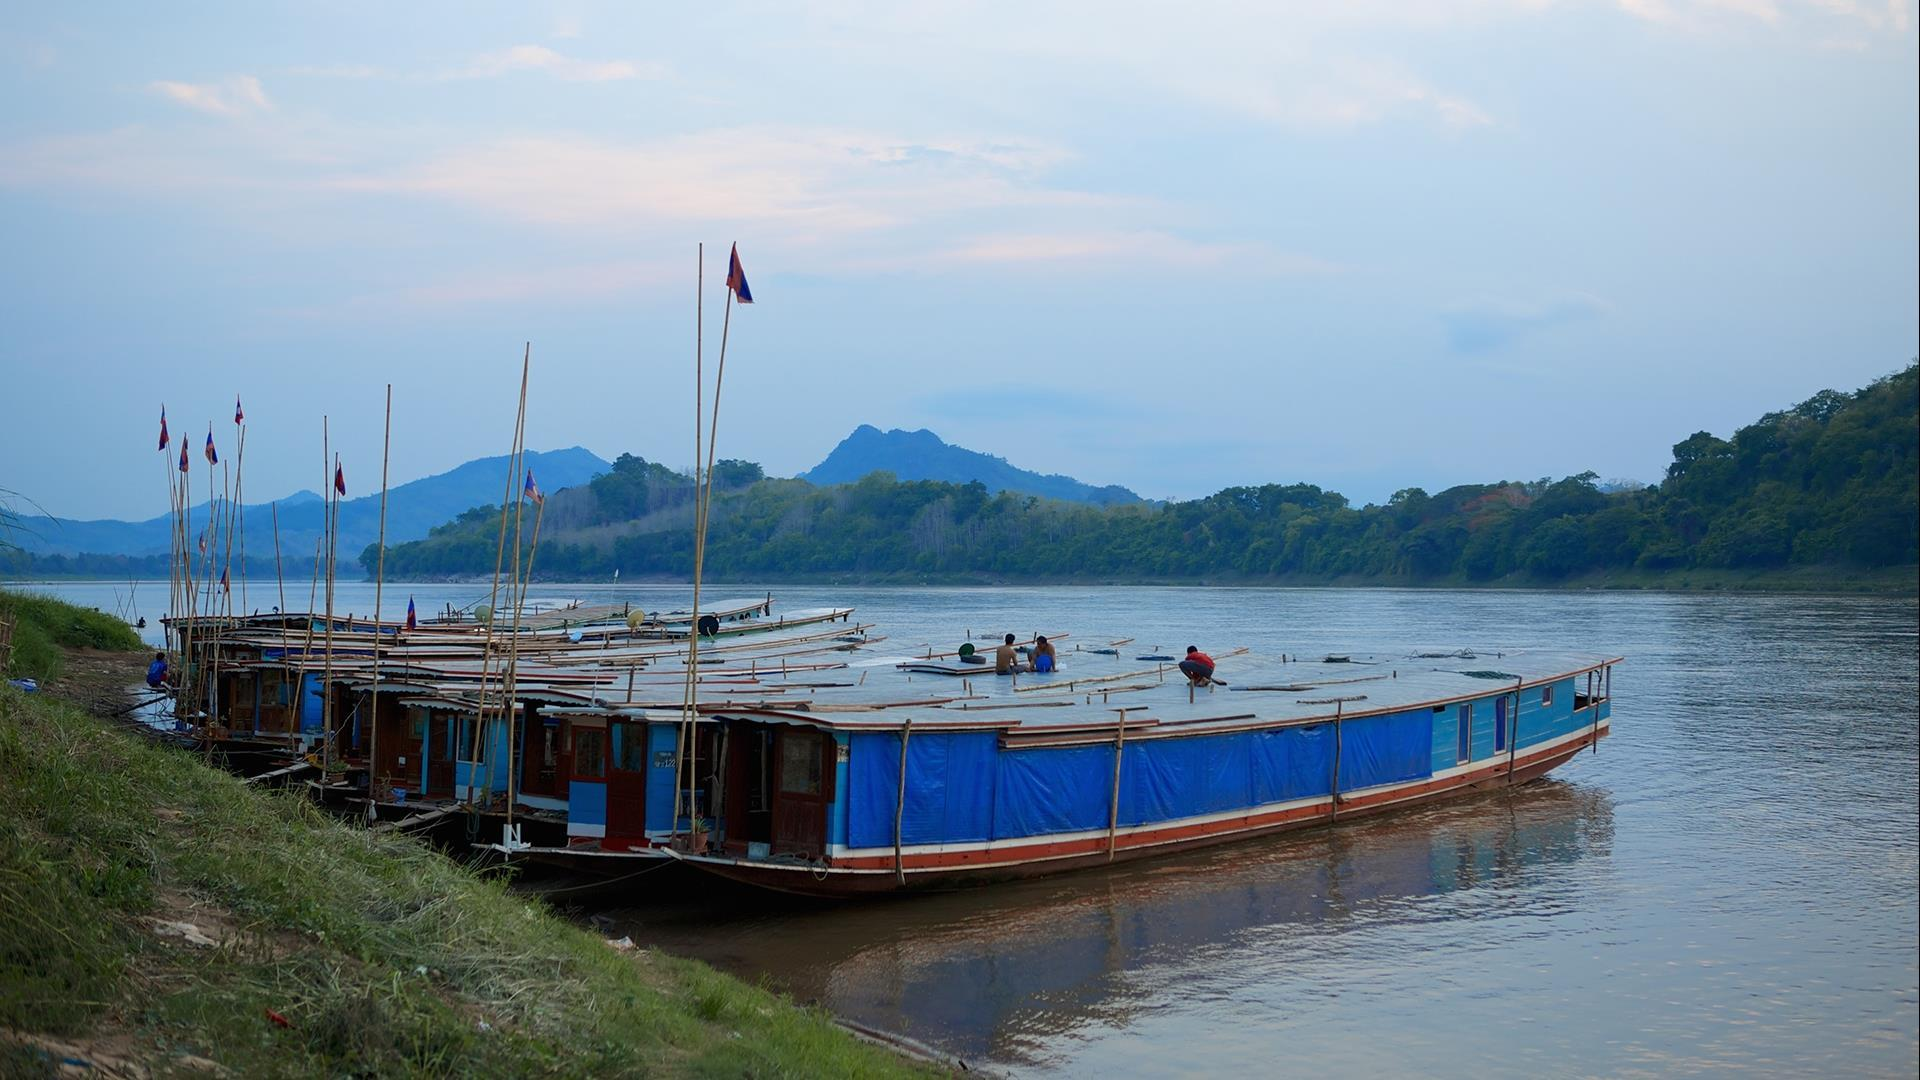 Laos, Luang Prabang: Bike, Trek, Kayak, & Culture Explorer - 2 Days | Get Out, Be Active and See the Real Countryside